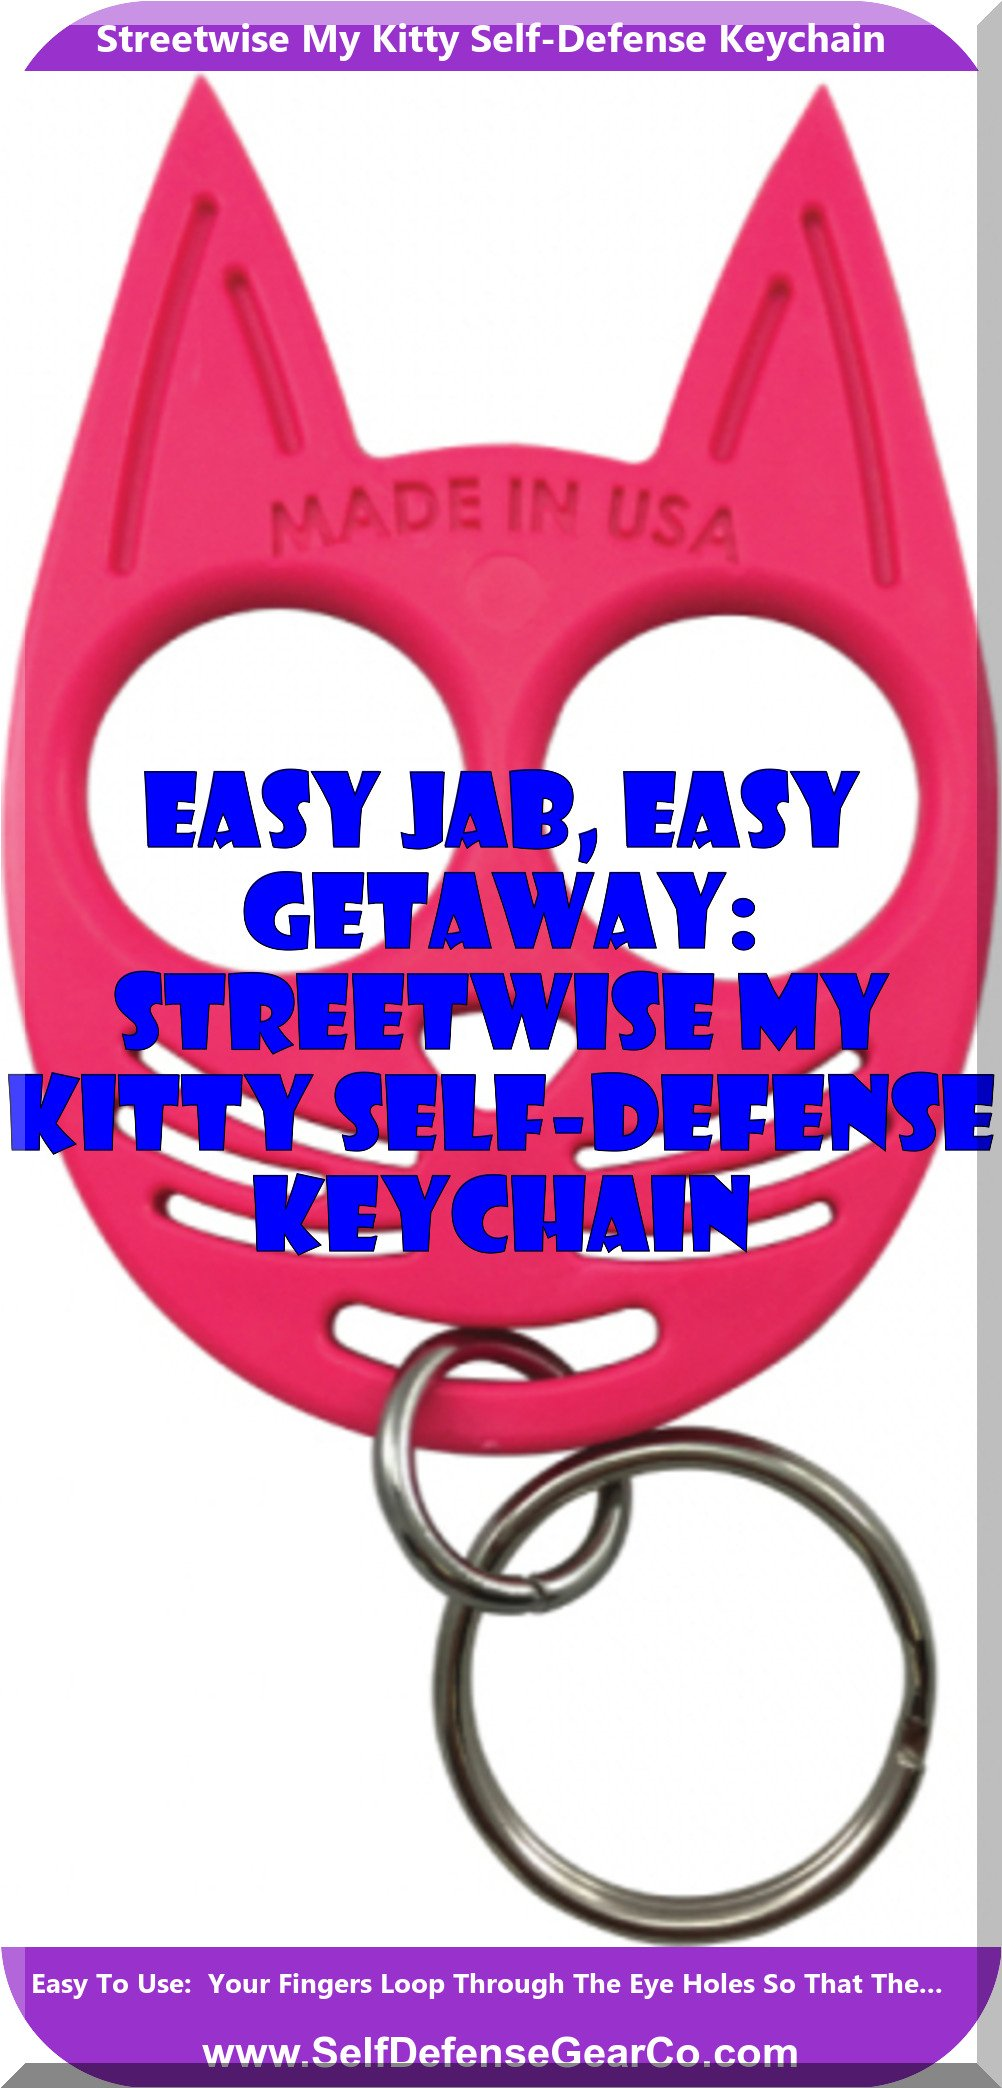 Easy Jab Easy Getaway Streetwise My Kitty Self Defense Keychain